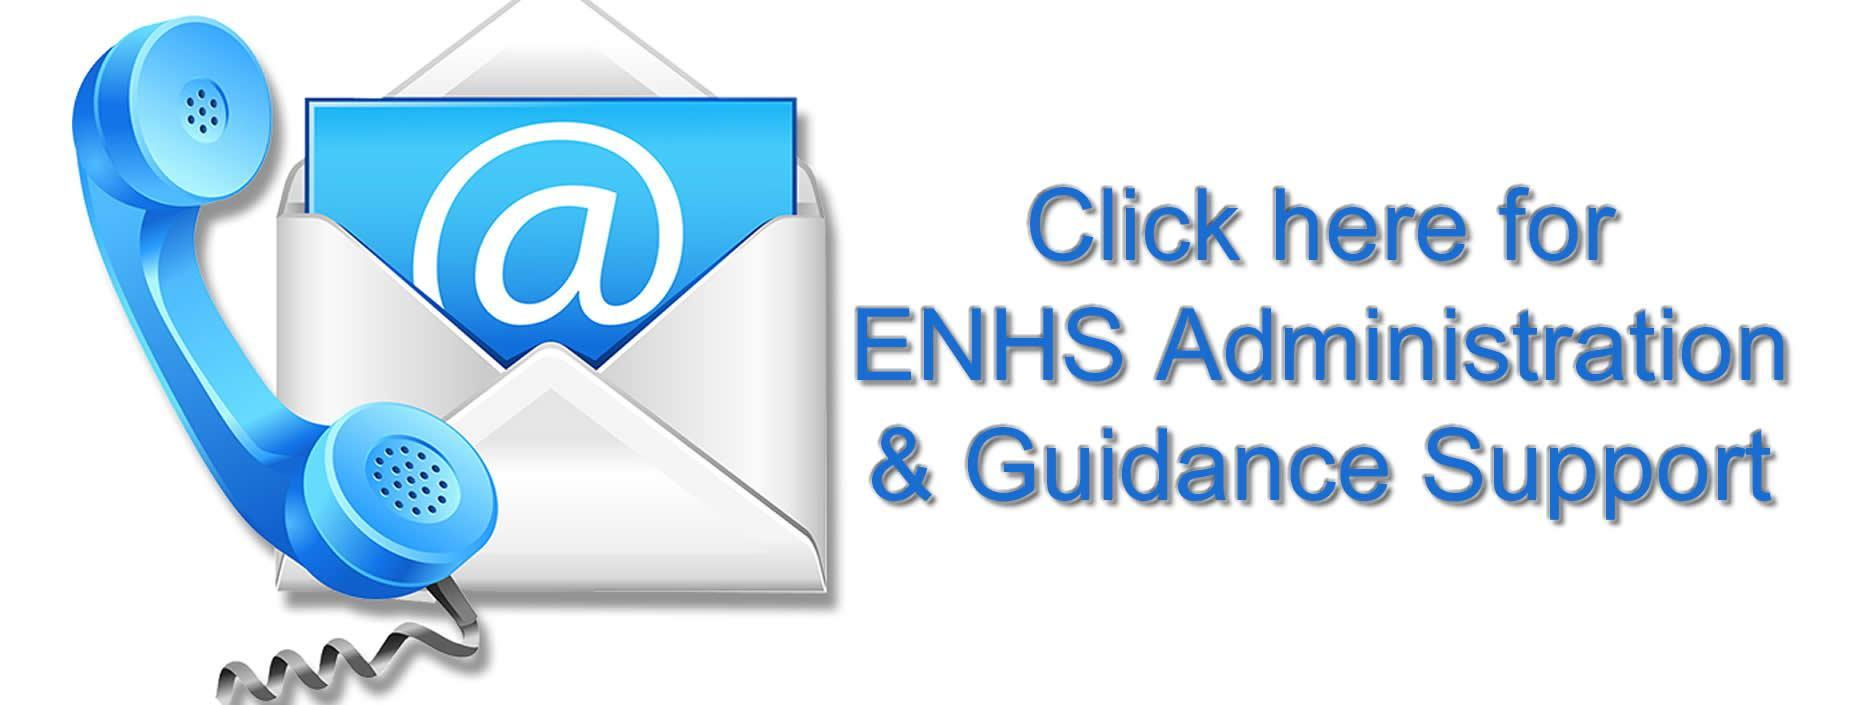 Administration and guidance support